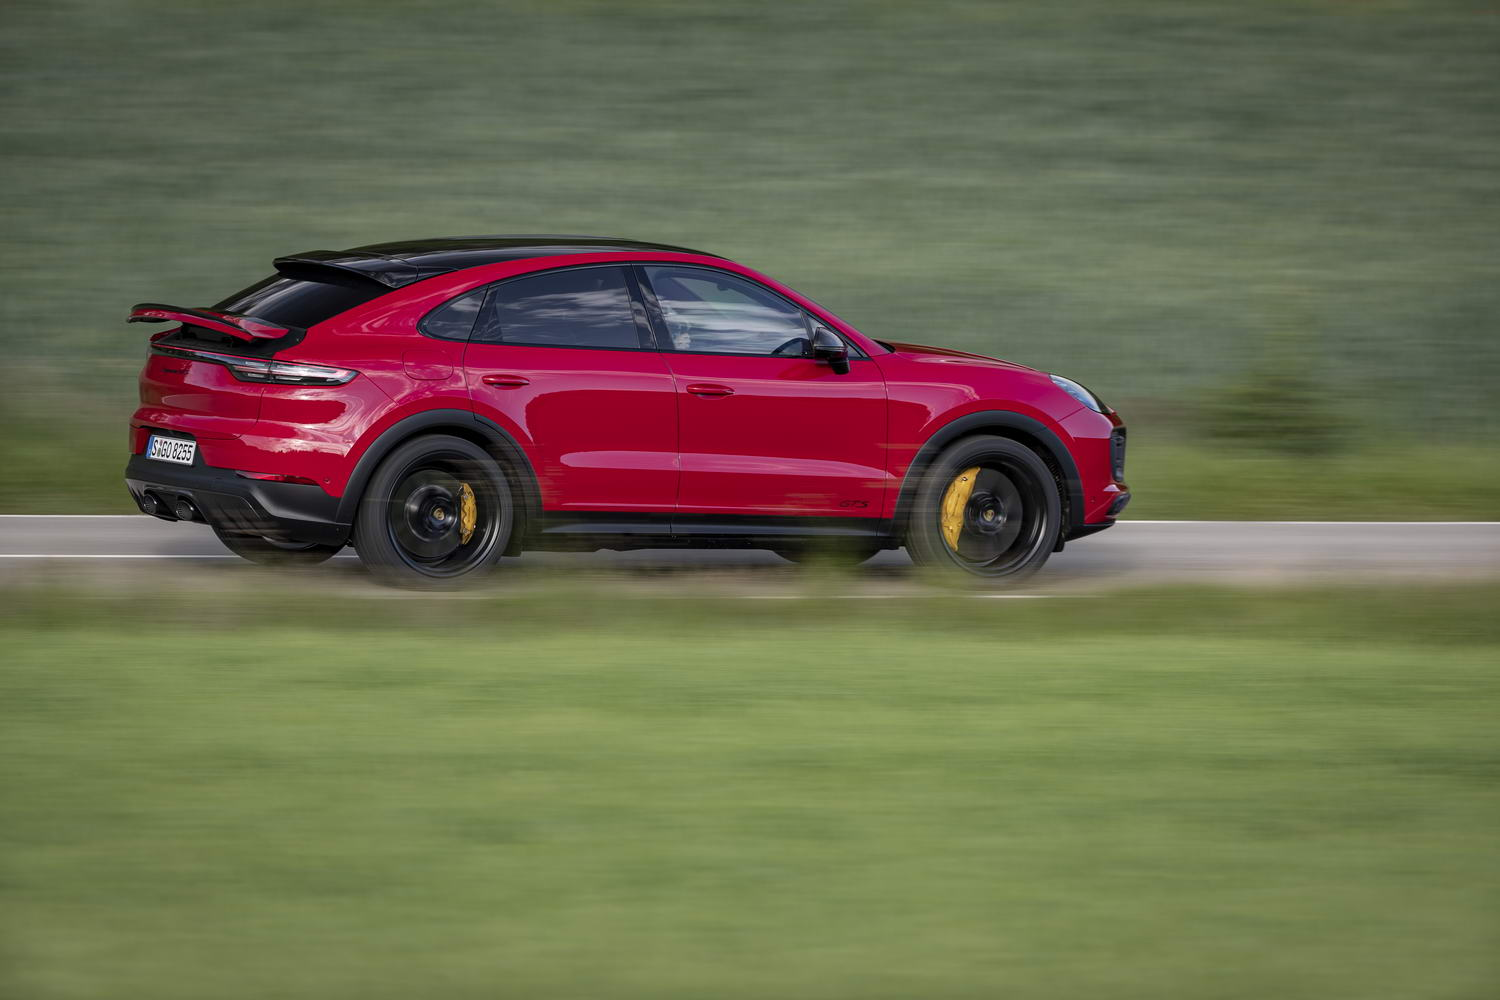 Porsche Cayenne Gts Coupe 2020 Reviews Complete Car